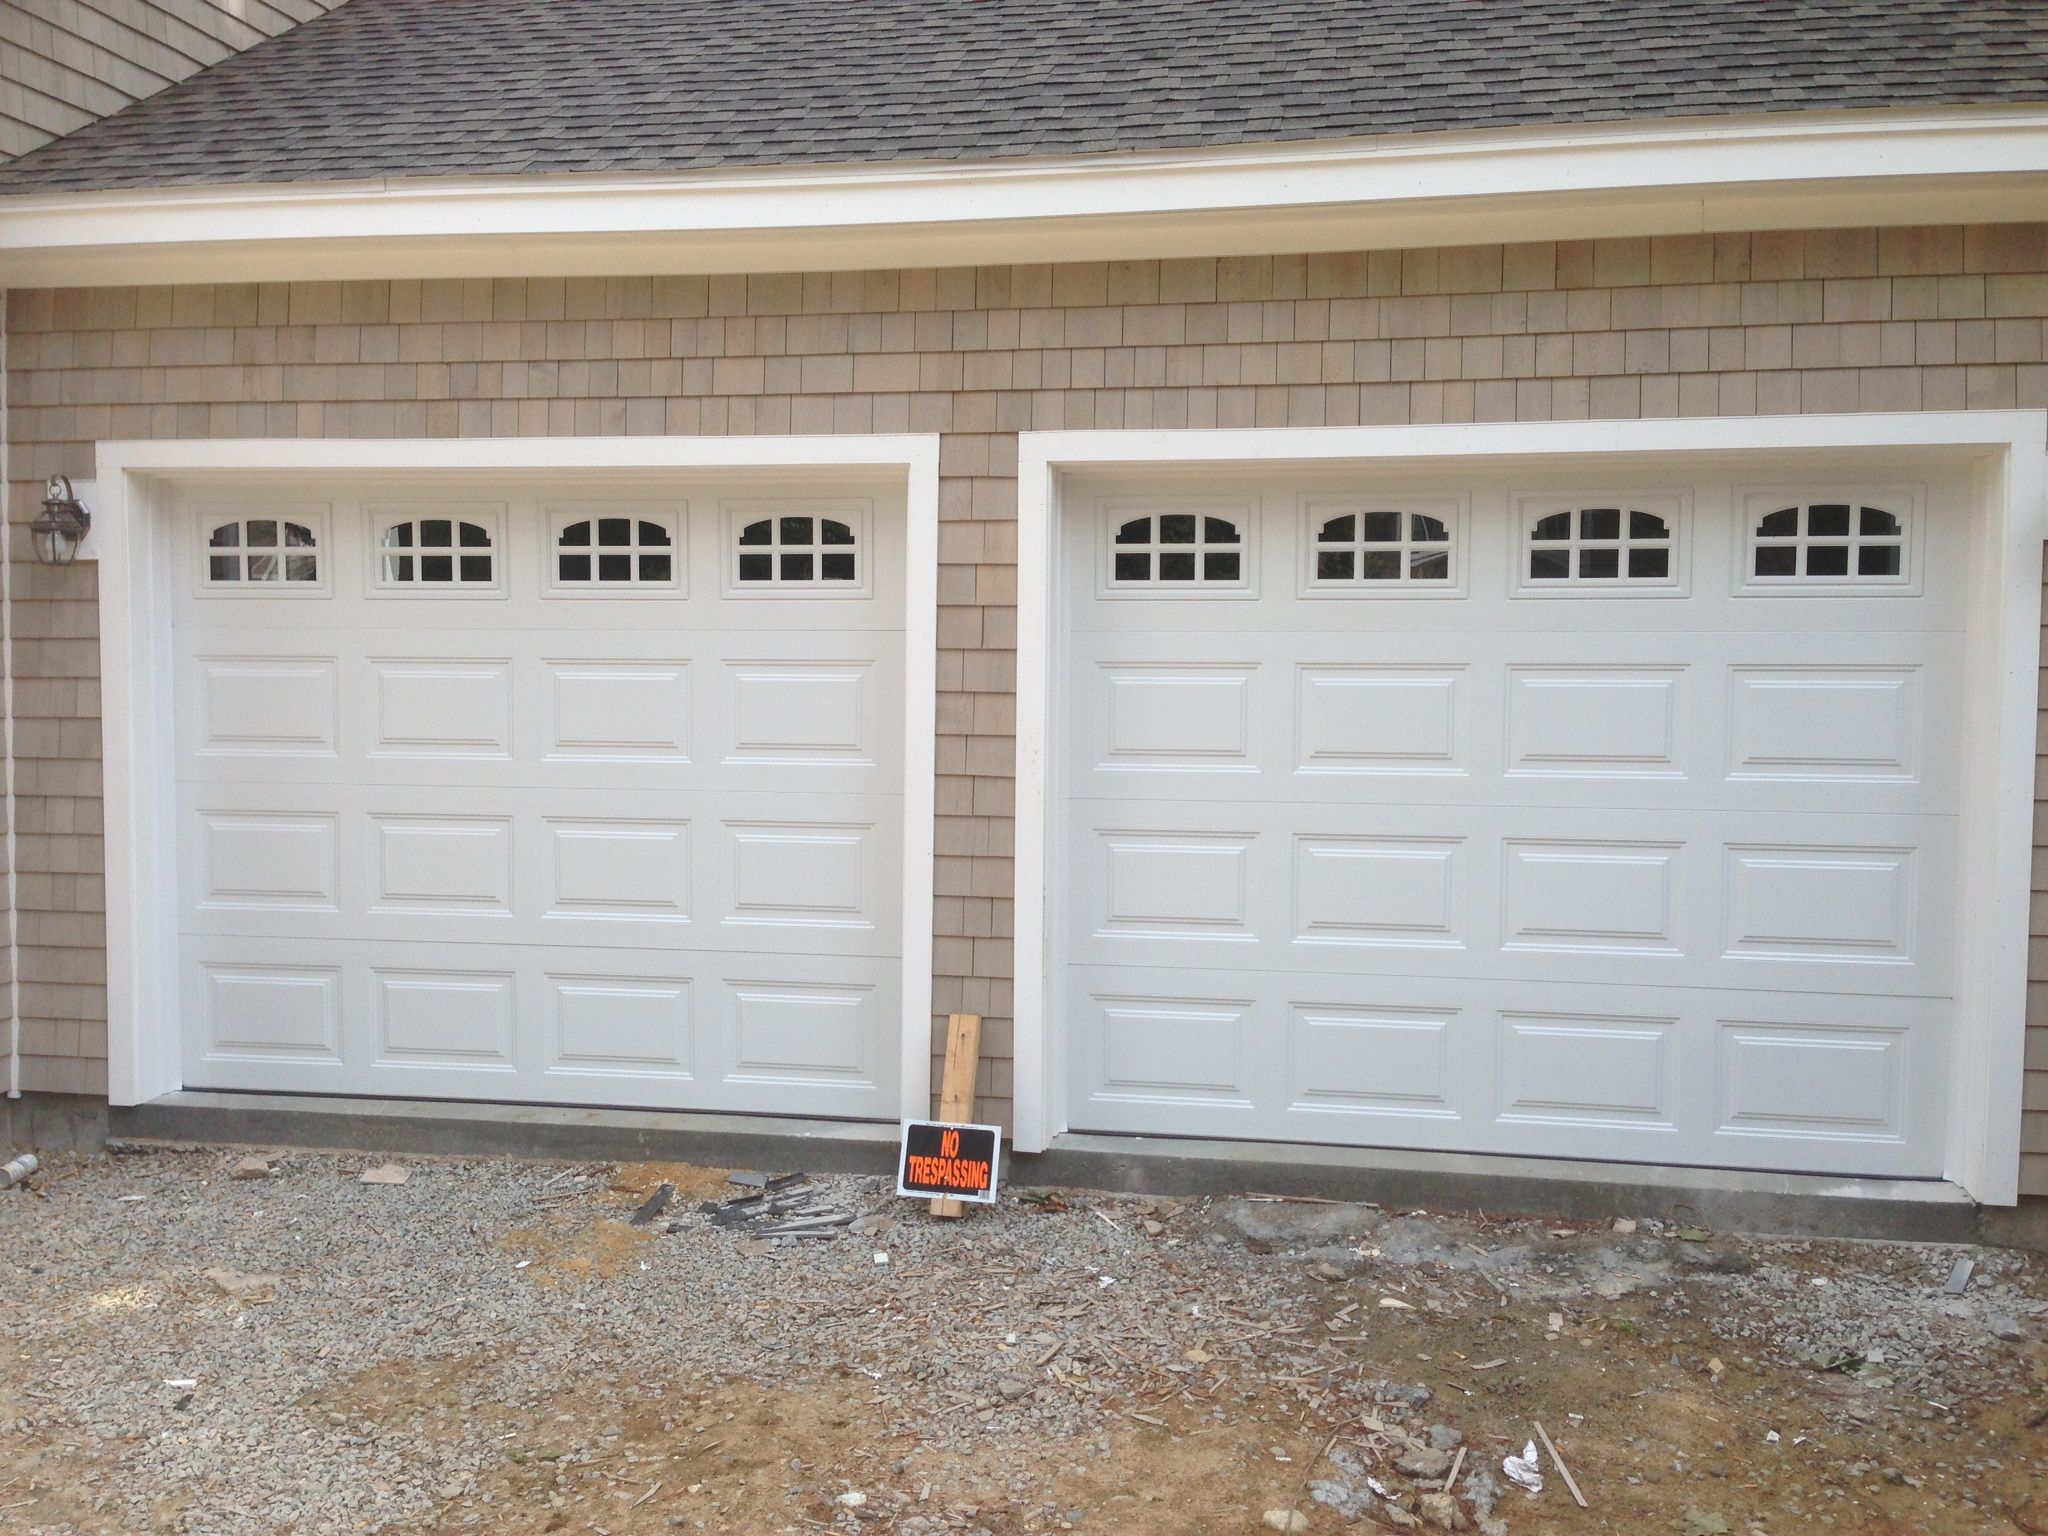 Haas Model 680 Steel Raised Panel Garage Doors In White With Cascade with regard to measurements 2048 X 1536